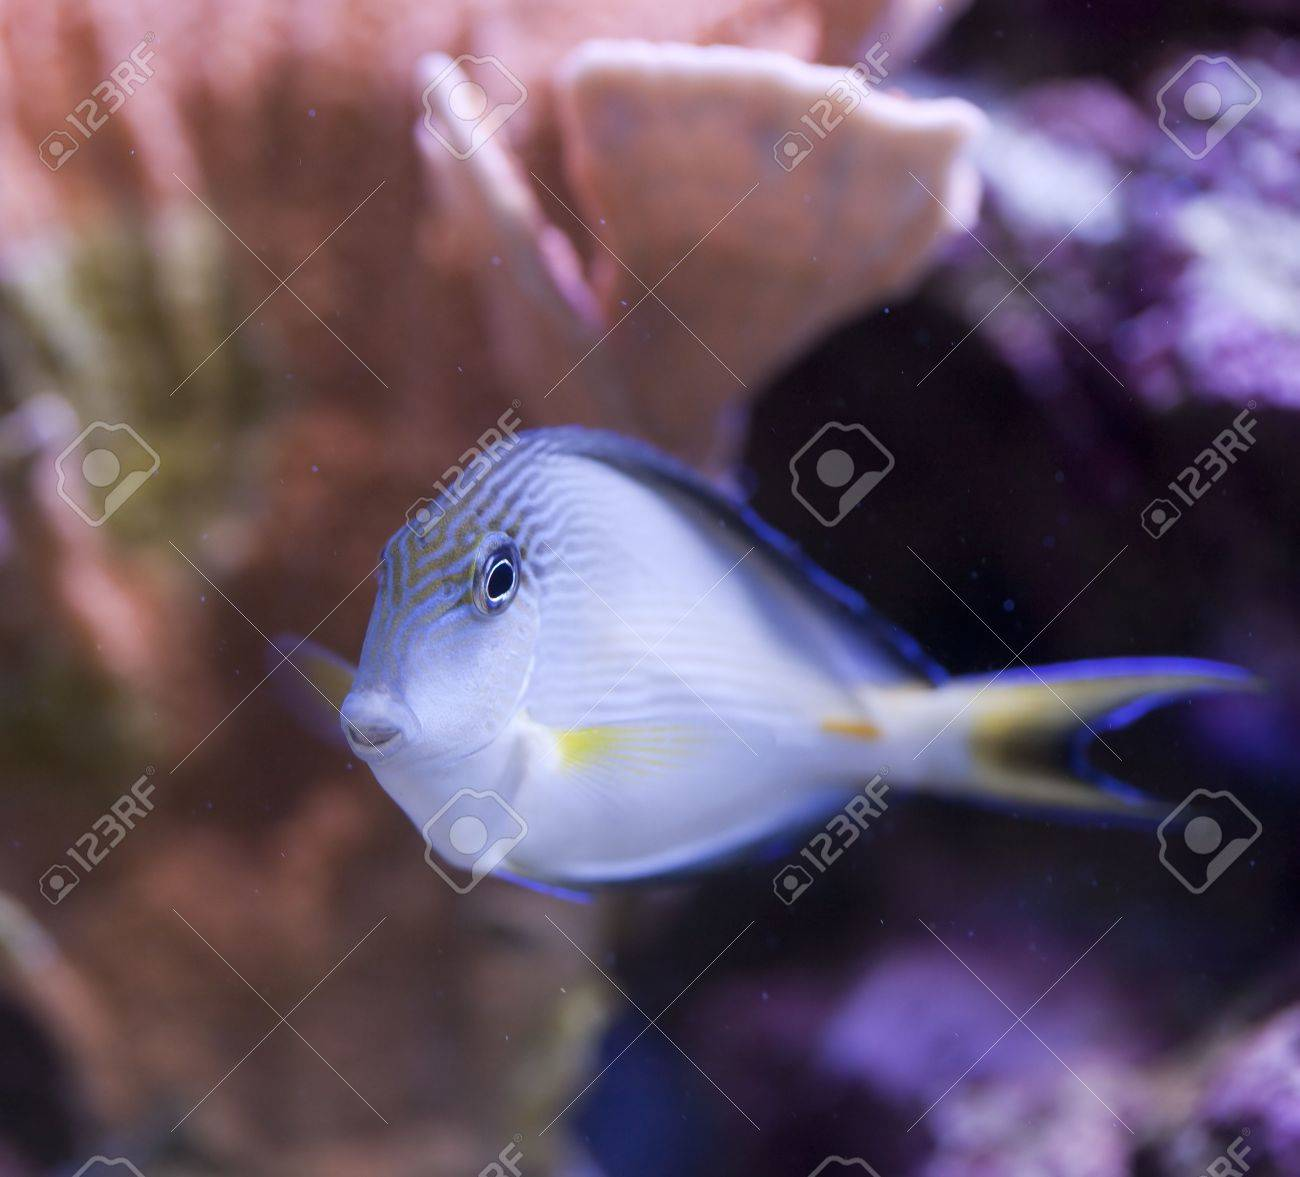 tropical animal in a salt water fish tank aquarium under water. Flash light can kill the animals so the photo was taken with available lights and reflectors Stock Photo - 5424725